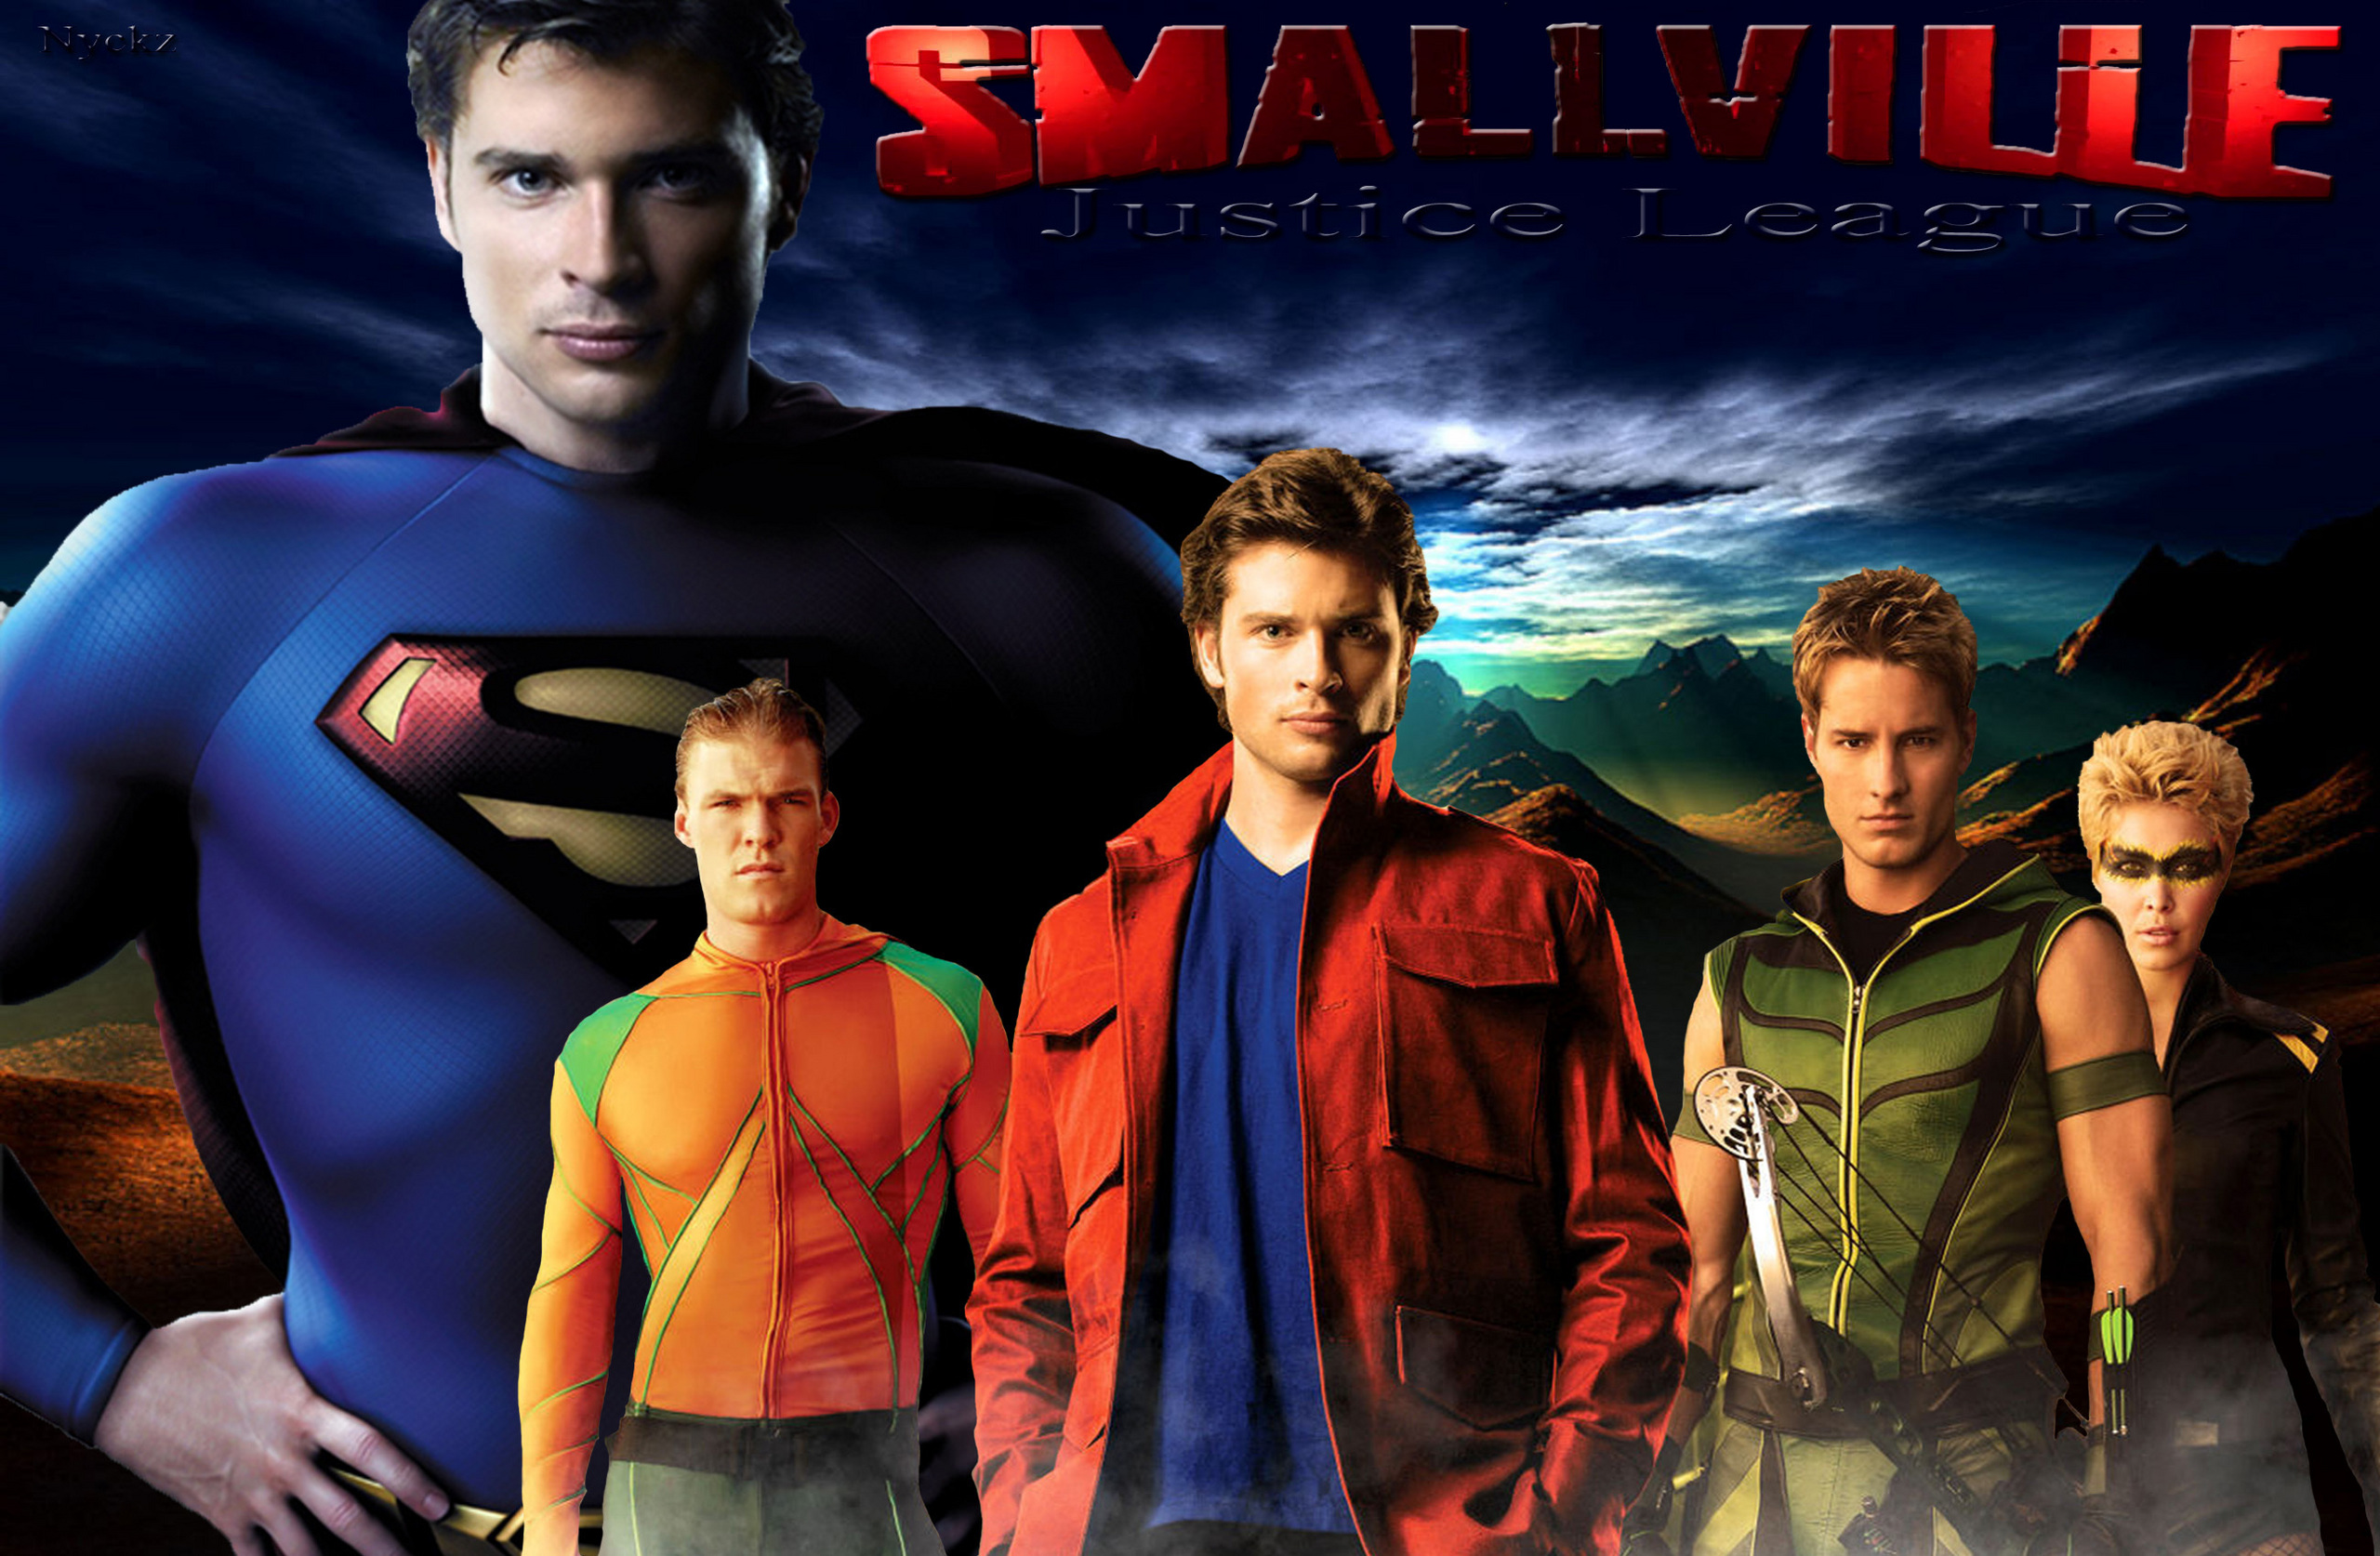 Smallville Fond Decran With Anime Titled WallpaperJustice League